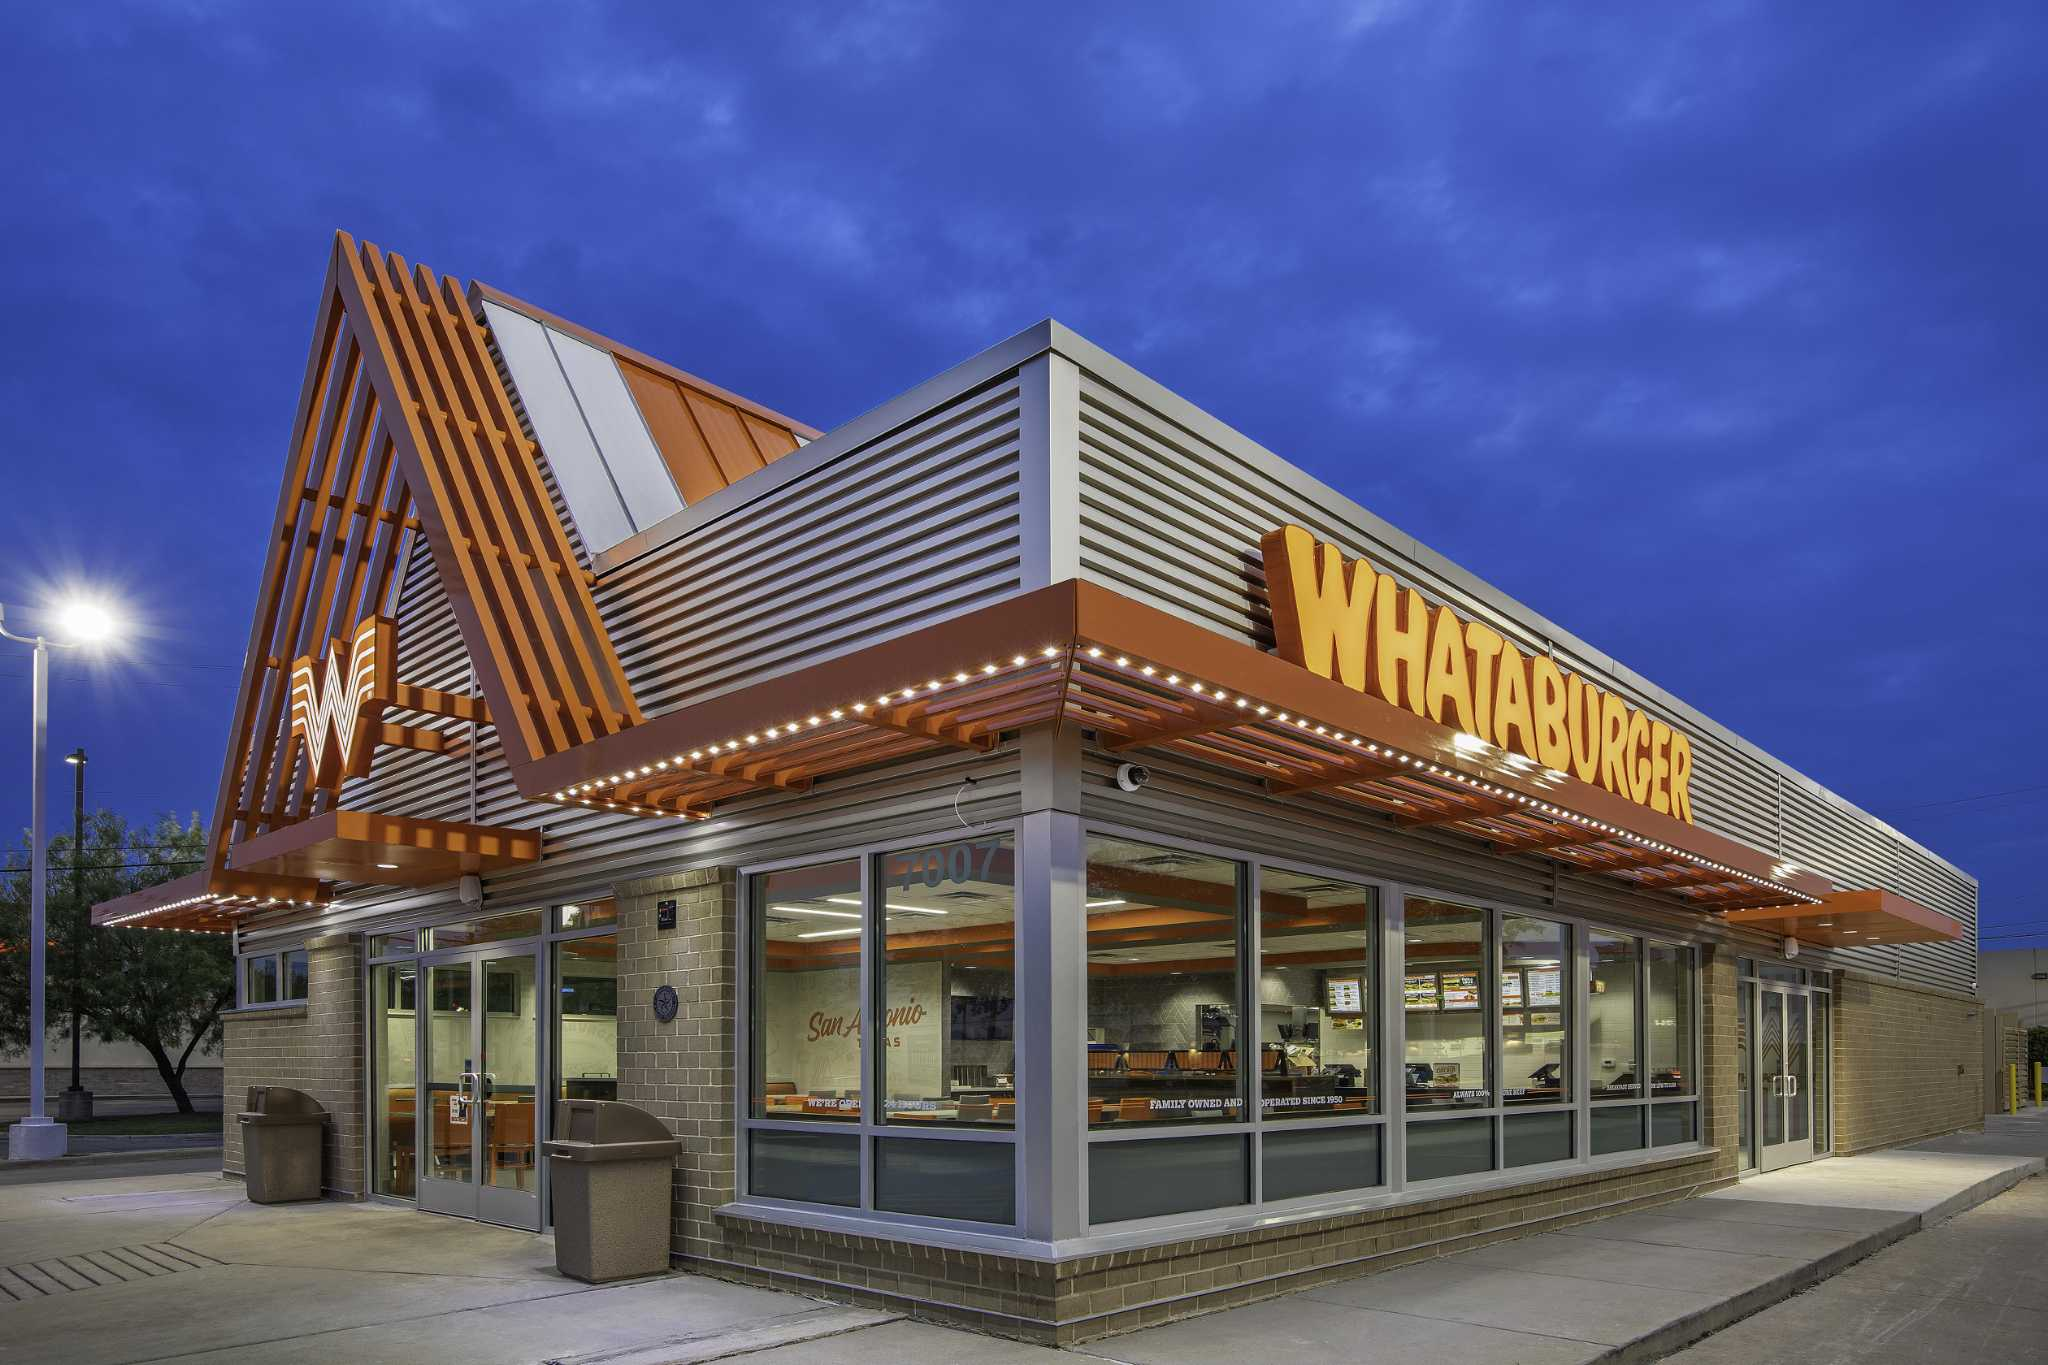 Far West Side will have a new Whataburger location by 2022